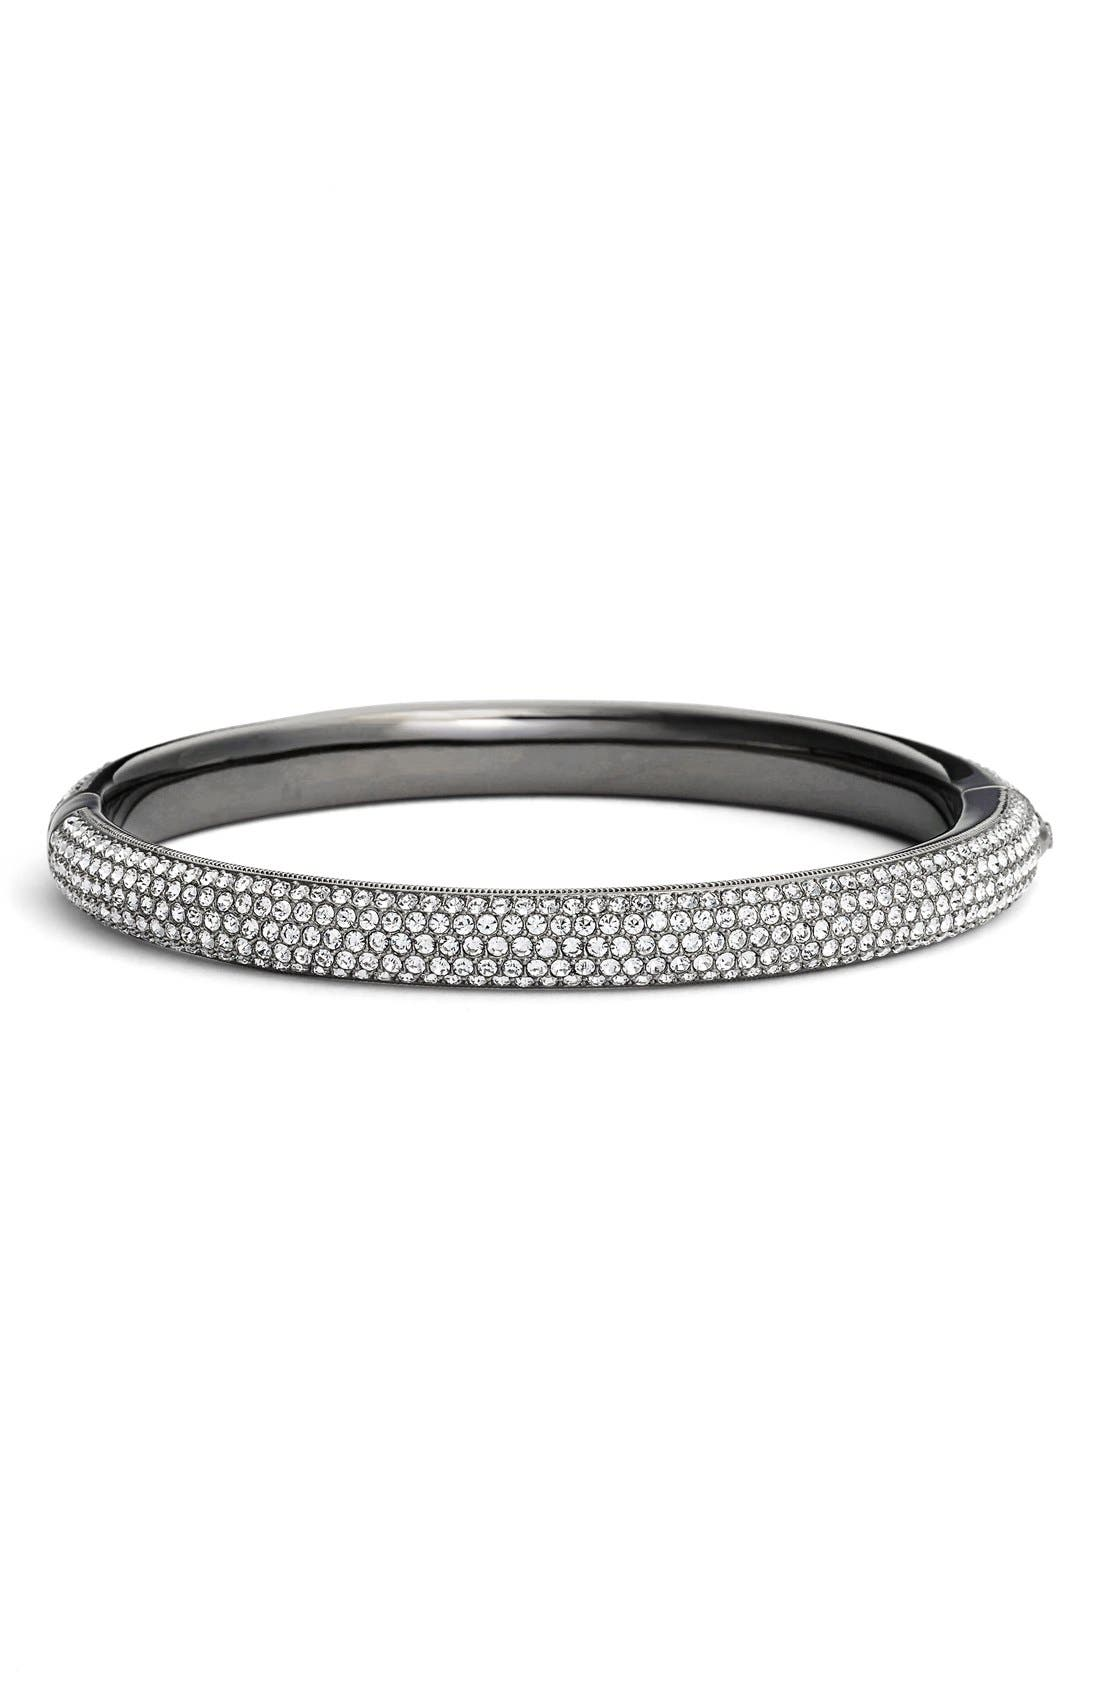 Pavé Crystal Bangle,                         Main,                         color, Black Hematite